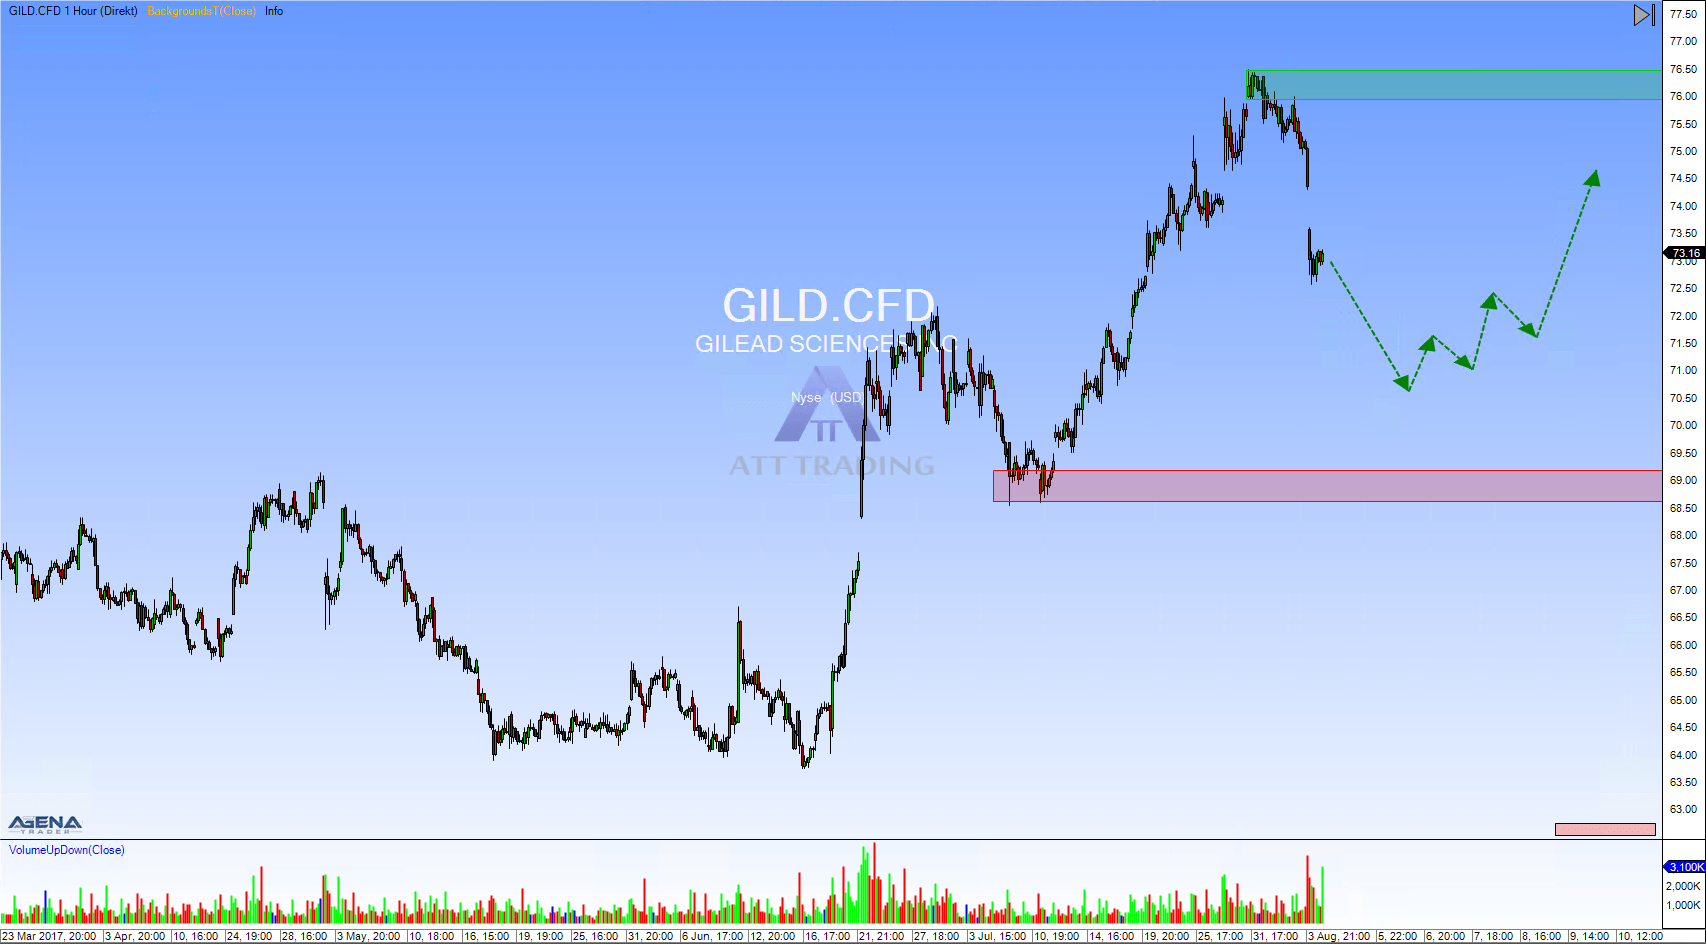 Gilead Sciences Inc. Stundenchart mit Ausblick